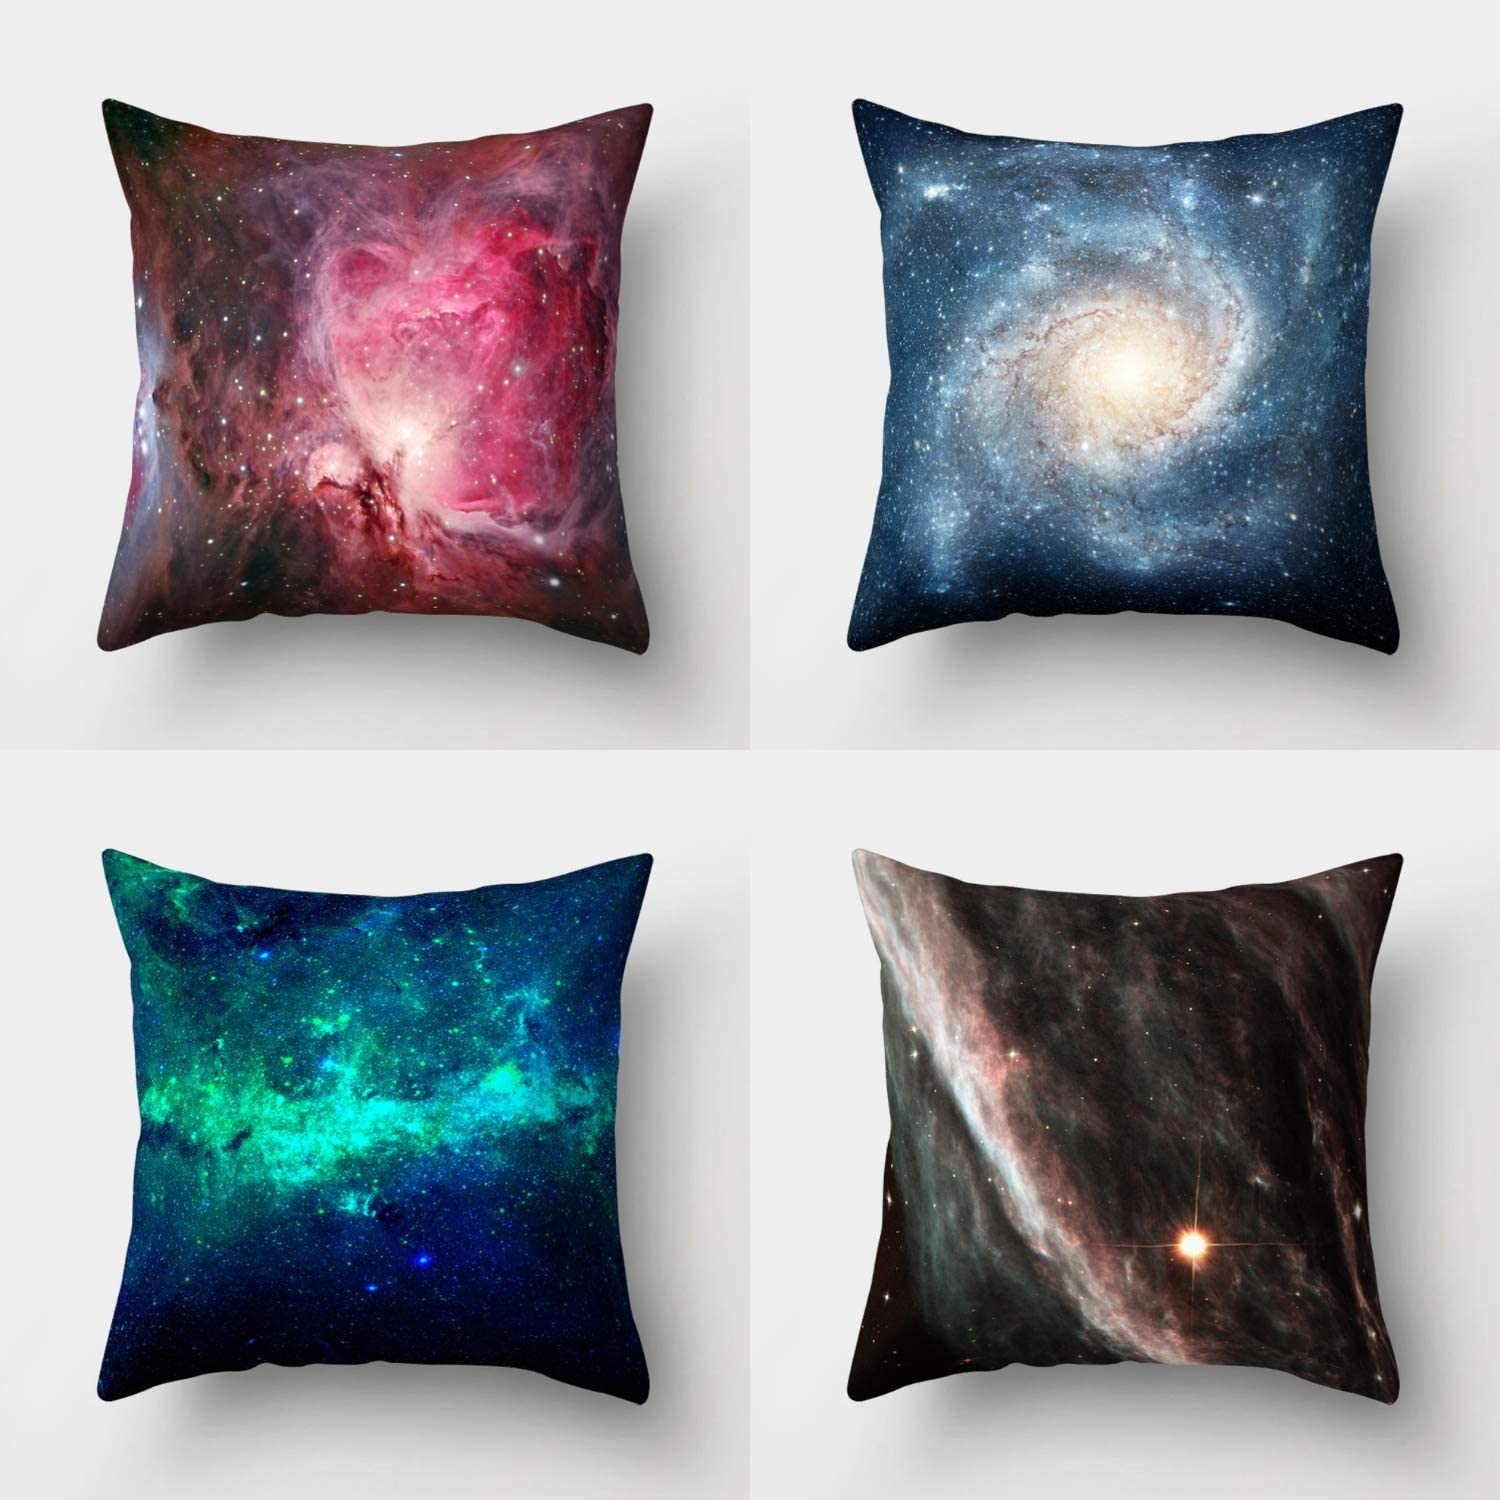 Whim-Wham Set of 4 Throw Pillow Covers Psychedelic Star Planet Celestial Body Aurora Mysterious Red Blue Green Brown Gray Cotton Linen Fabric Pillowcases for Sofa Bedroom Car 18x18/45cm x 45cm.